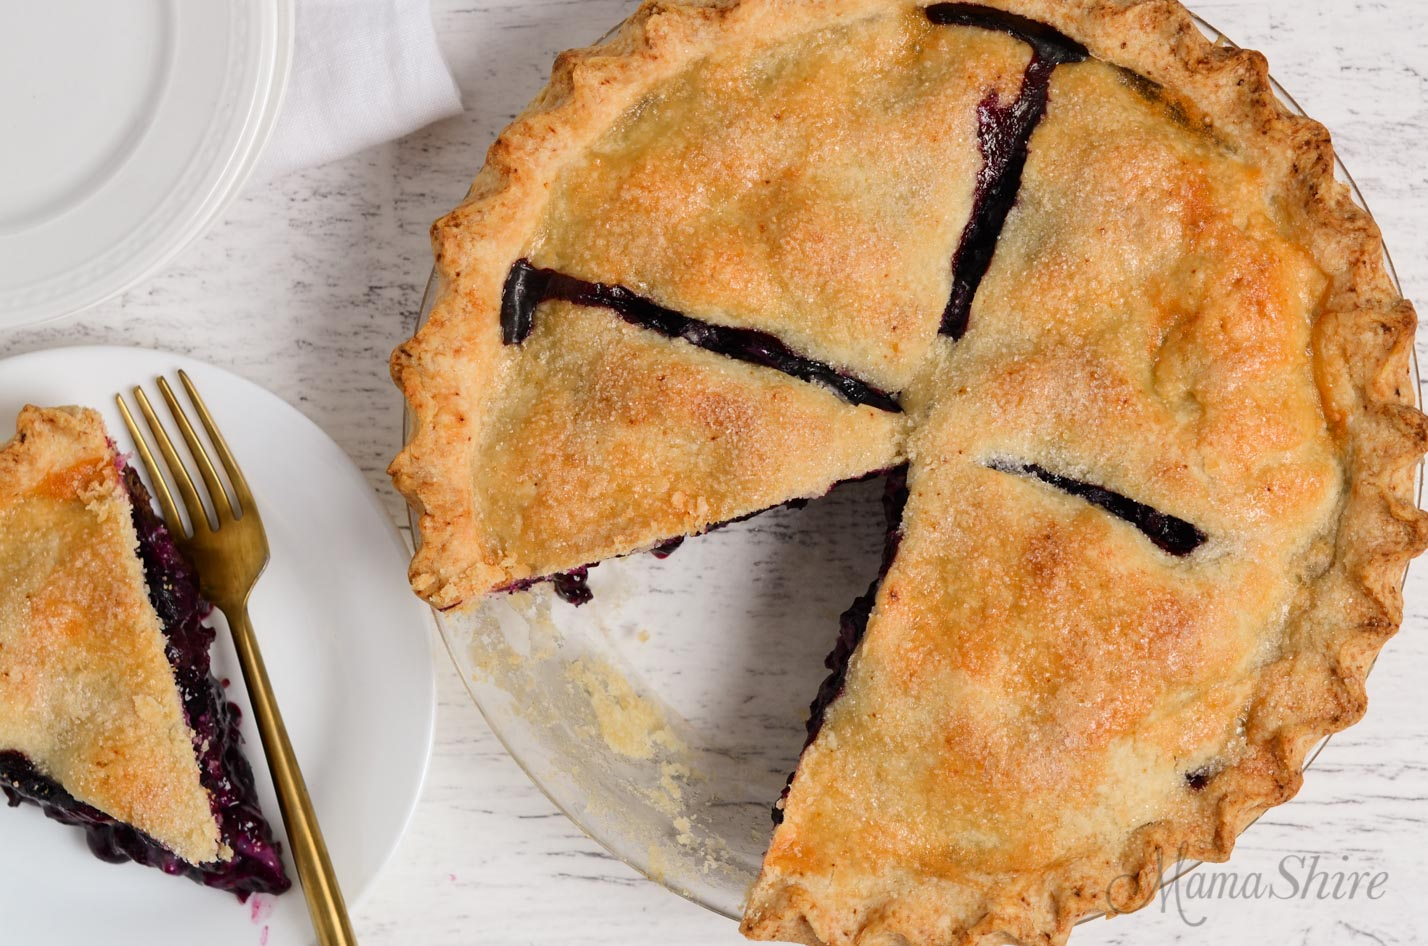 Gluten-Free Blueberry Pie with one slice cut out.